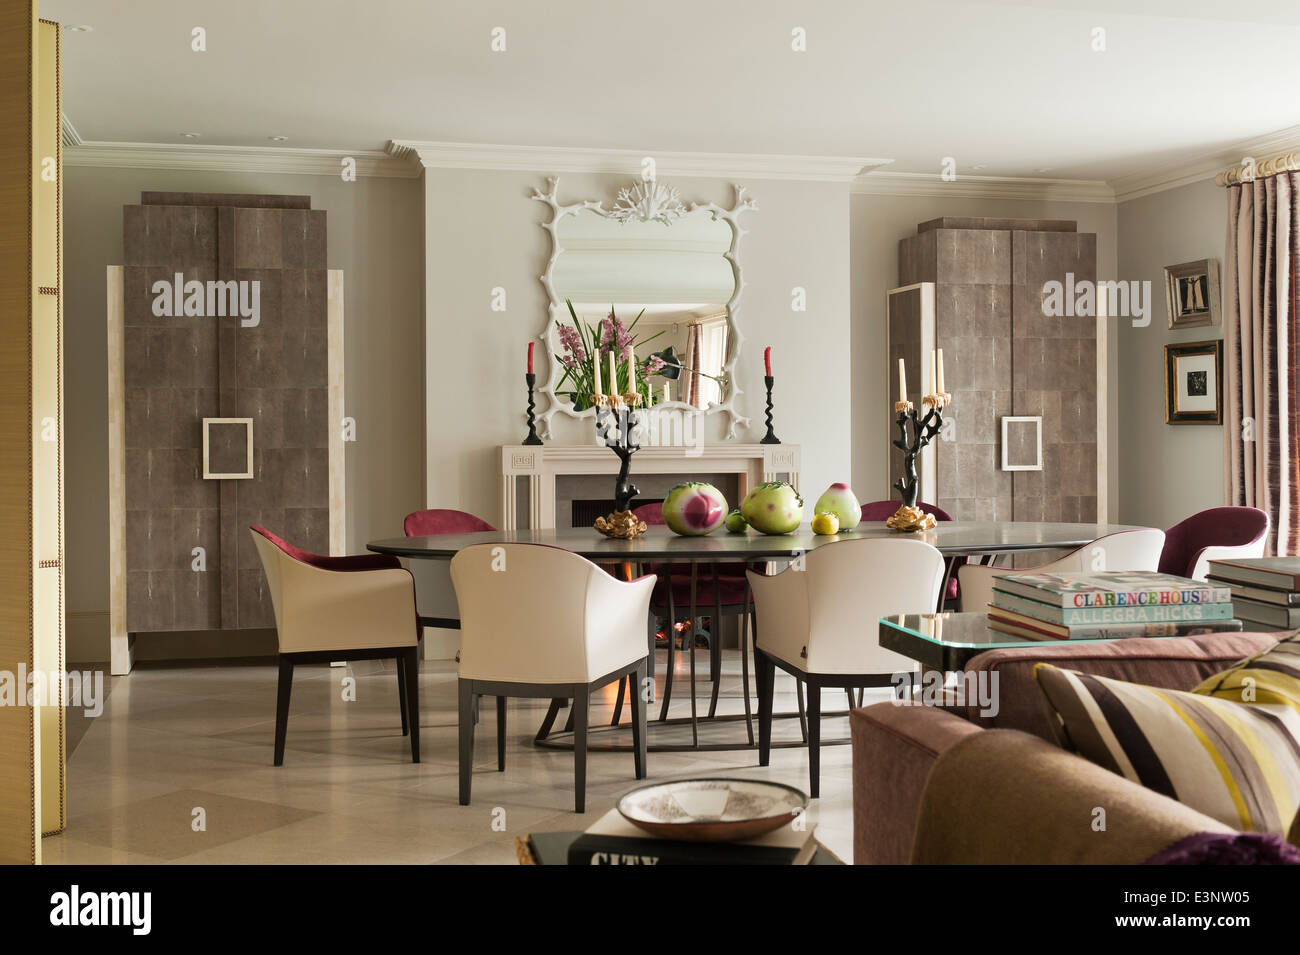 dining room with fire place and mirror - Stock Image